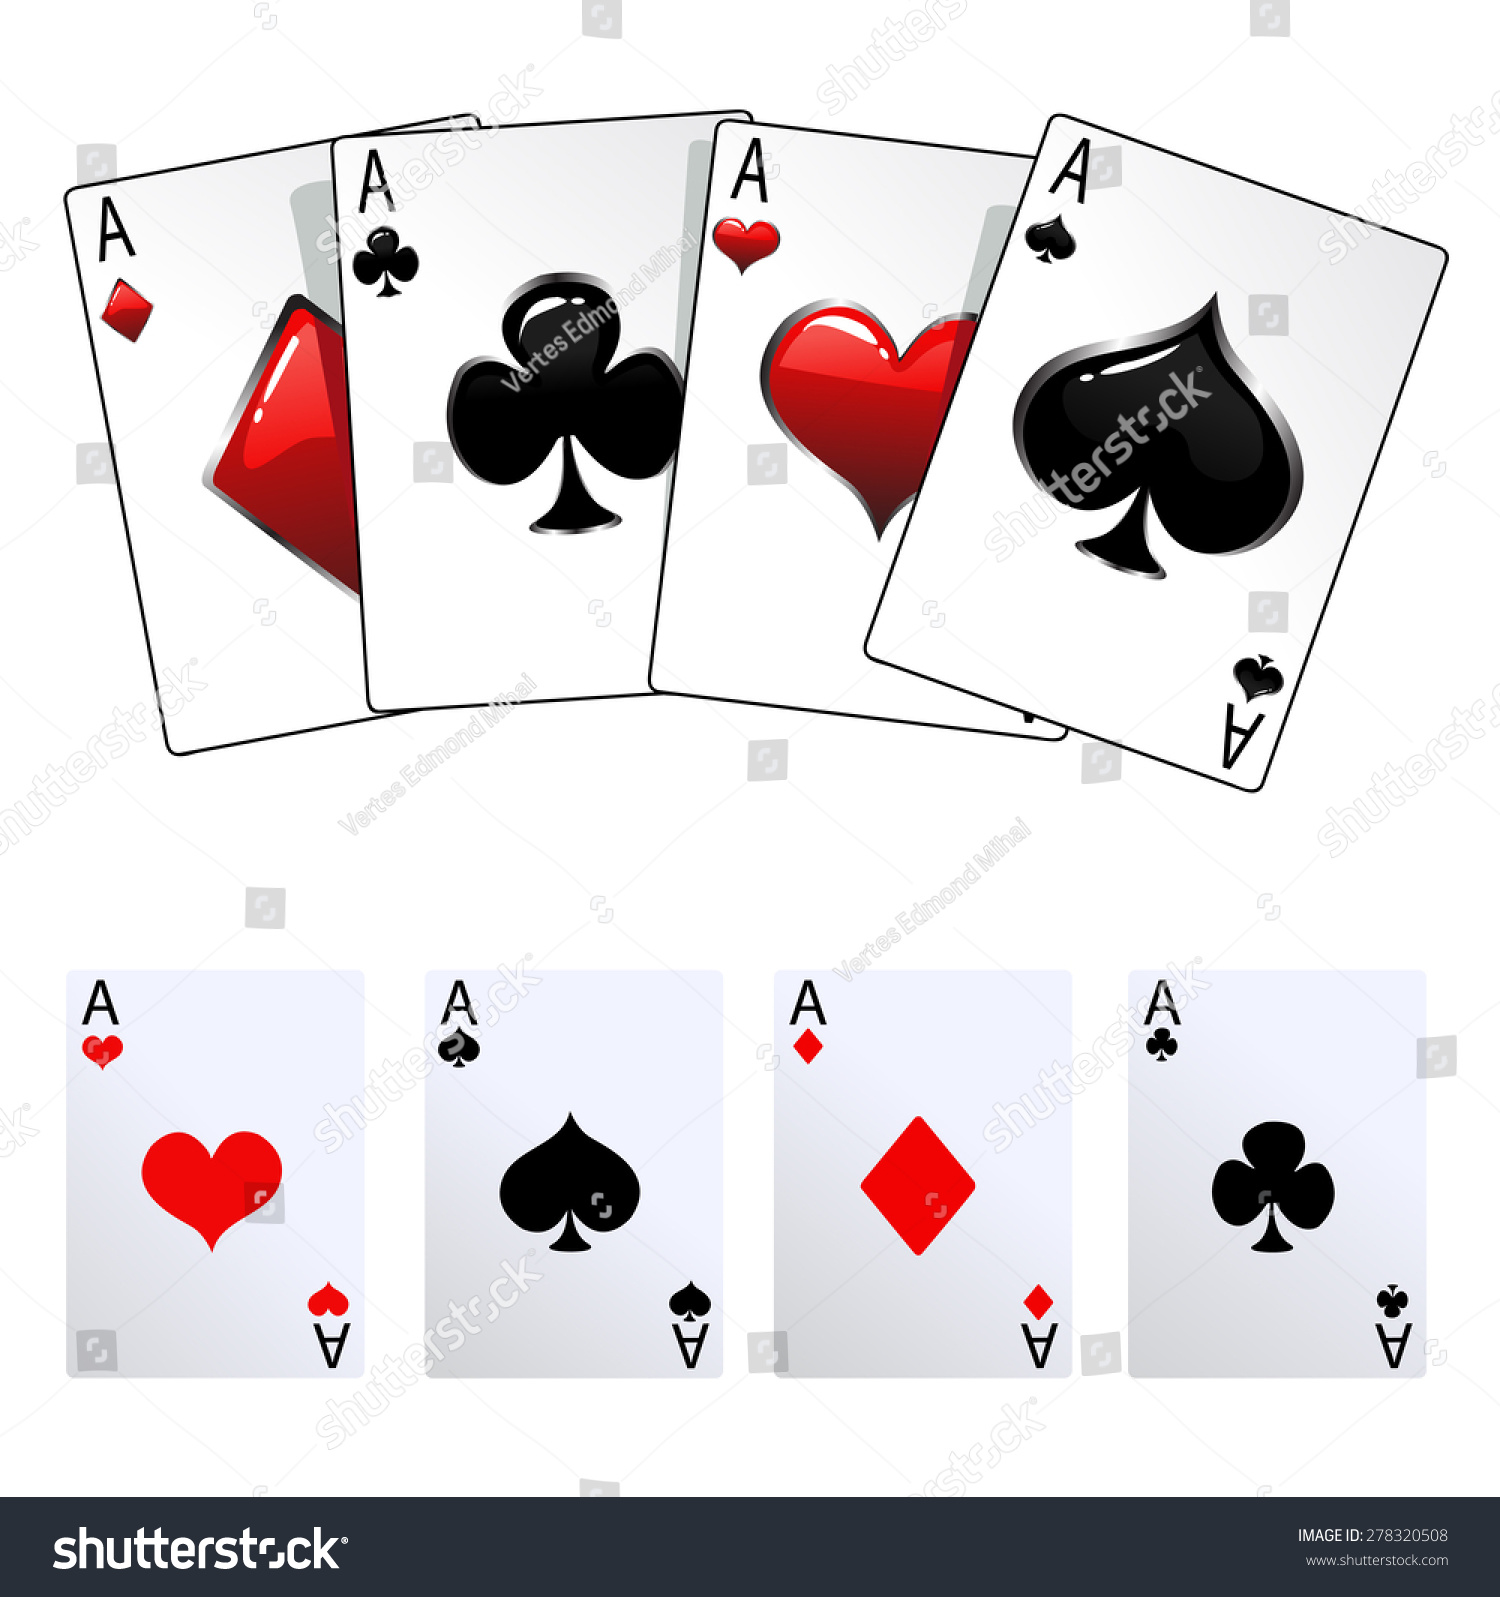 Winning Poker Hand Four Aces Playing Stock Vector HD (Royalty Free ...